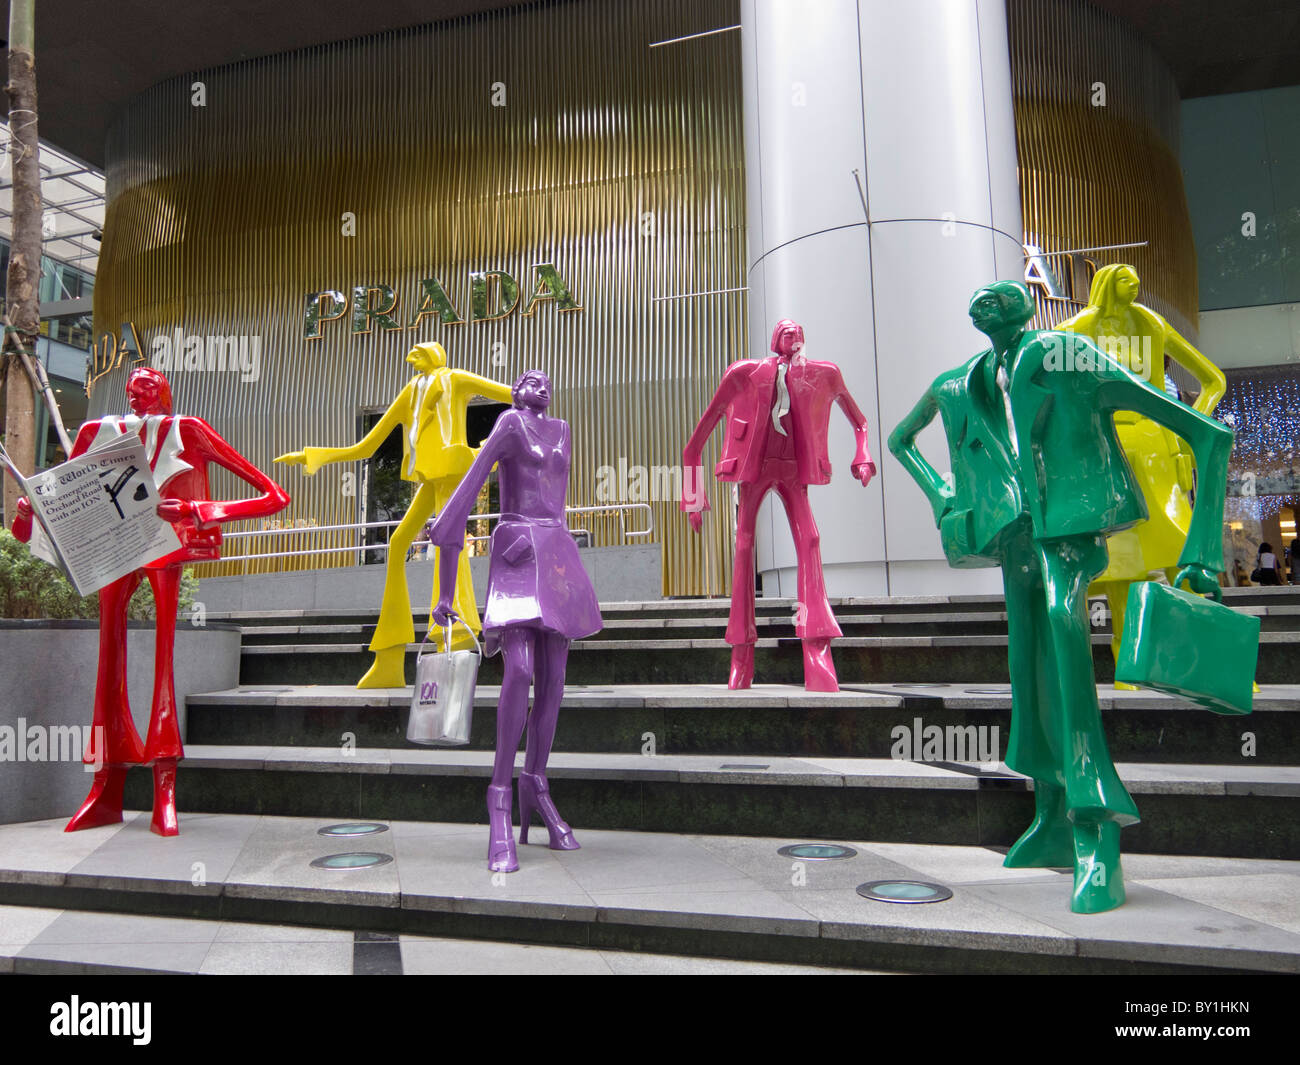 Colourful modern art sculptures outside shopping mall in Orchard Road in Singapore - Stock Image